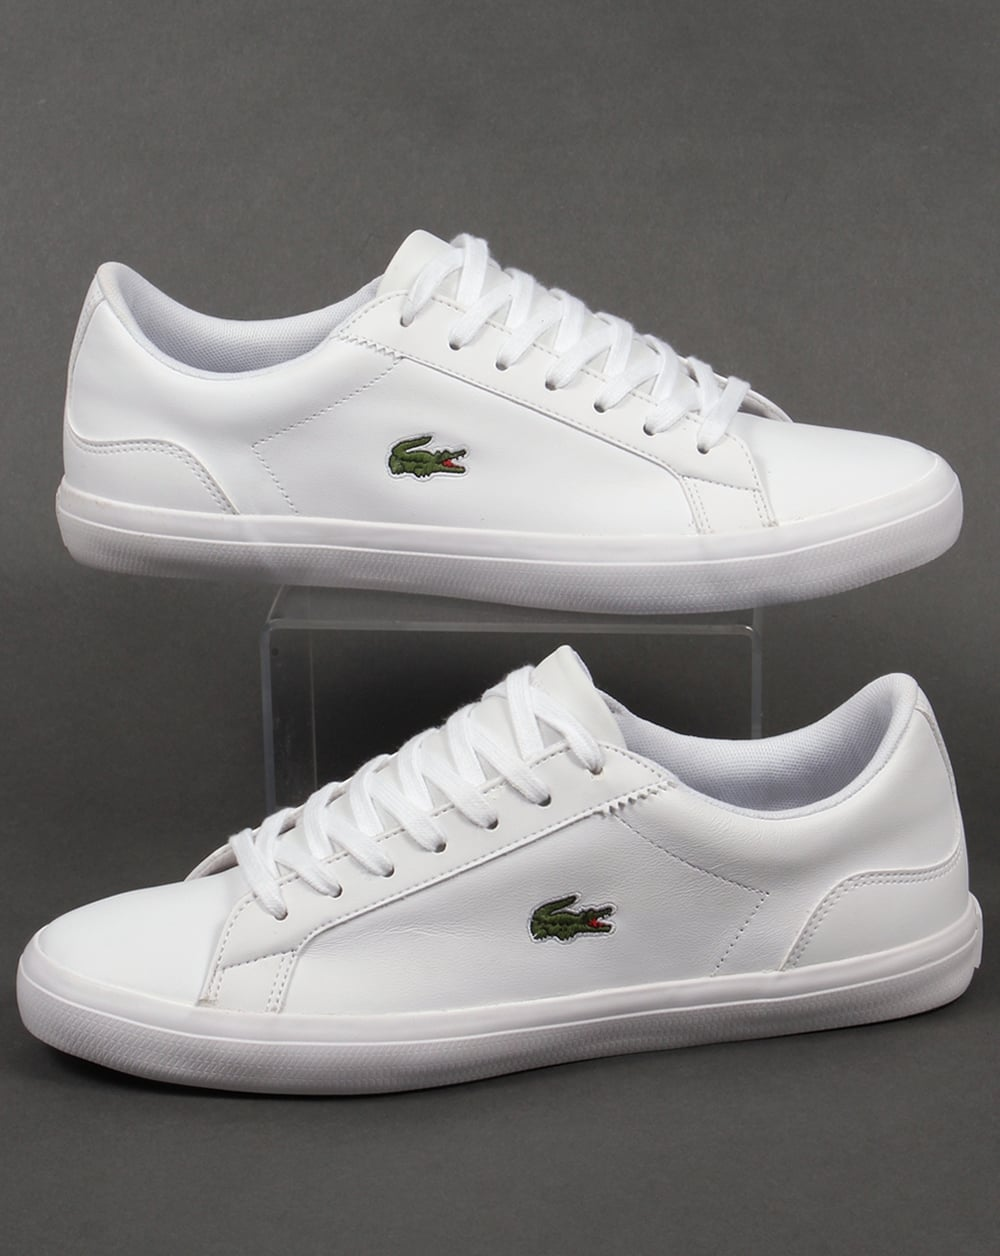 b8a1964ca Lacoste Lacoste Lerond Leather Trainers White